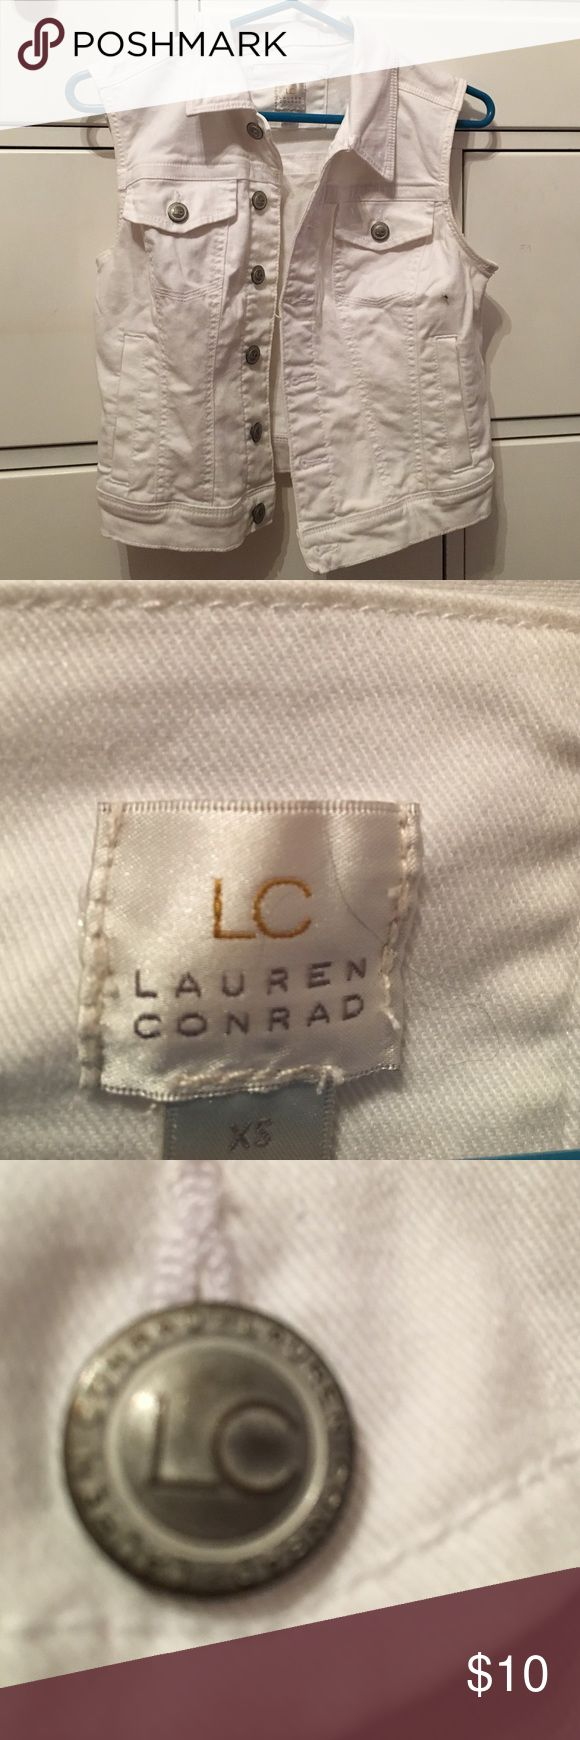 Lauren Conrad White Jean Vest 🎉SALE ON ALL AMERICAN EAGLE, HOLLISTER, CHARLOTTE RUSSE LAUREN CONRAD AND FOREVER 21 BRAND ITEMS 🎉This white Jean vest from Lauren Conrad has two hand pockets and two decorative pockets. A few loose threads but otherwise in great condition! Lauren Conrad Jackets & Coats Jean Jackets